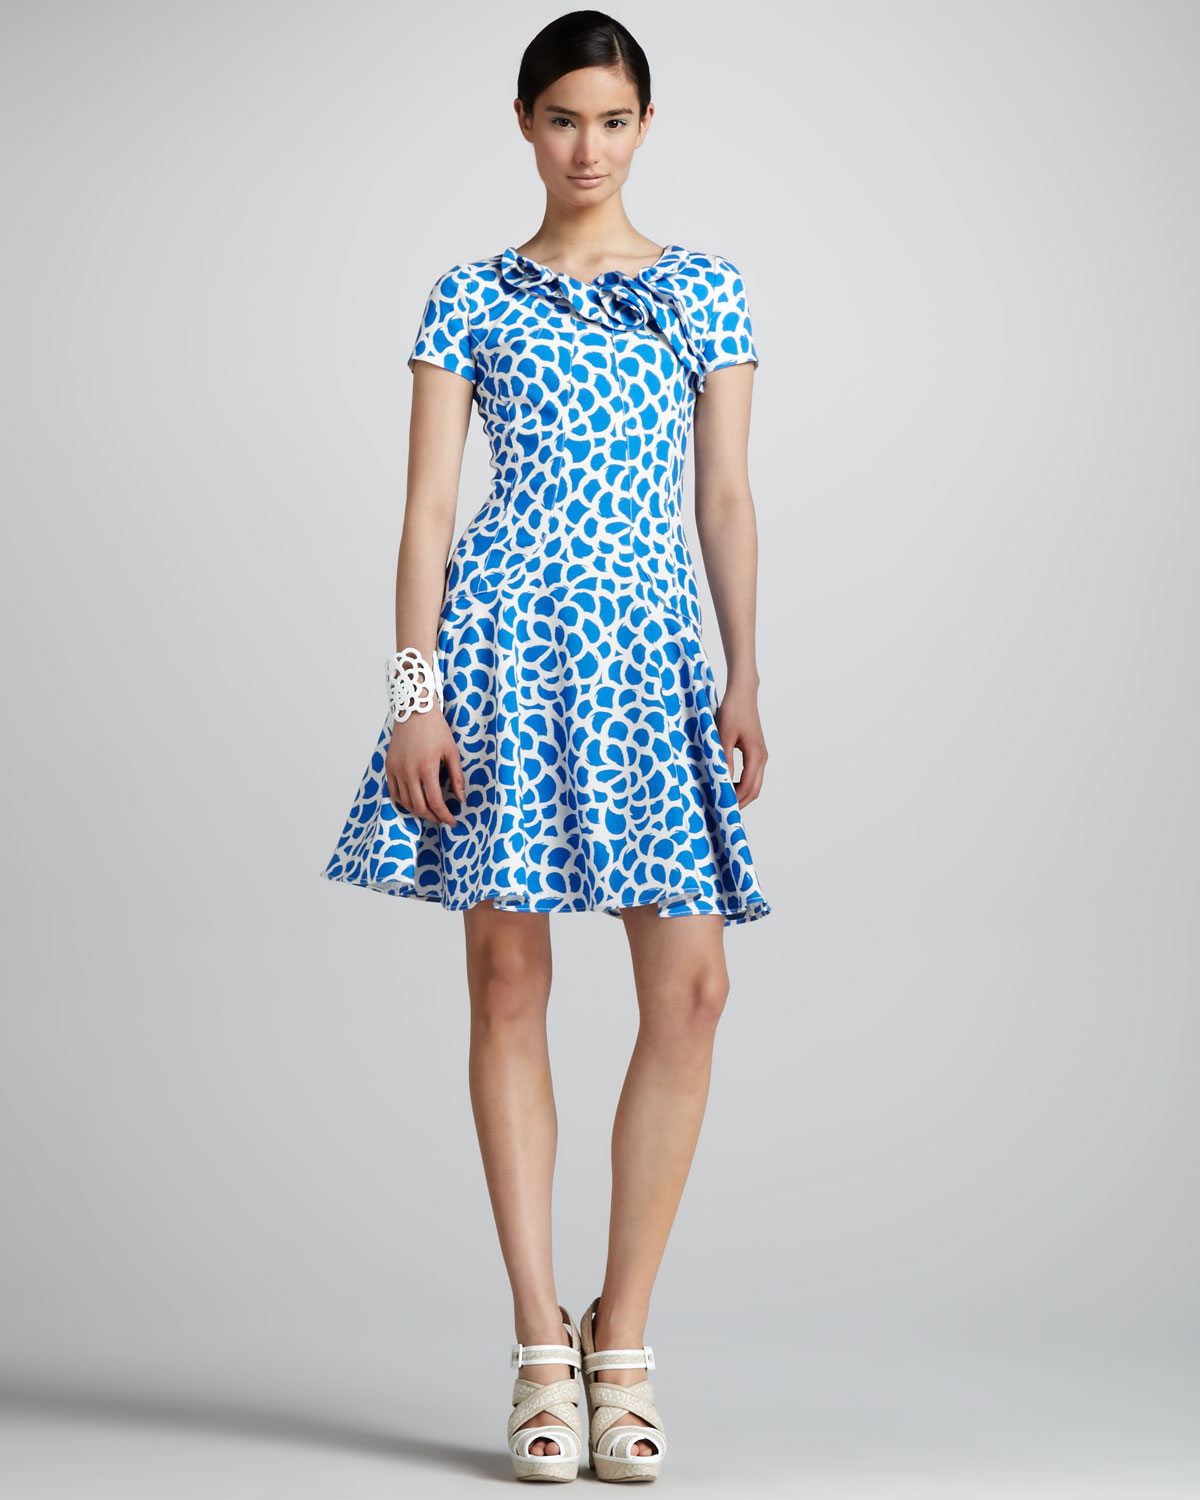 Oscar-de-la-Renta-Camellia-Print-Dress-Pacific-White